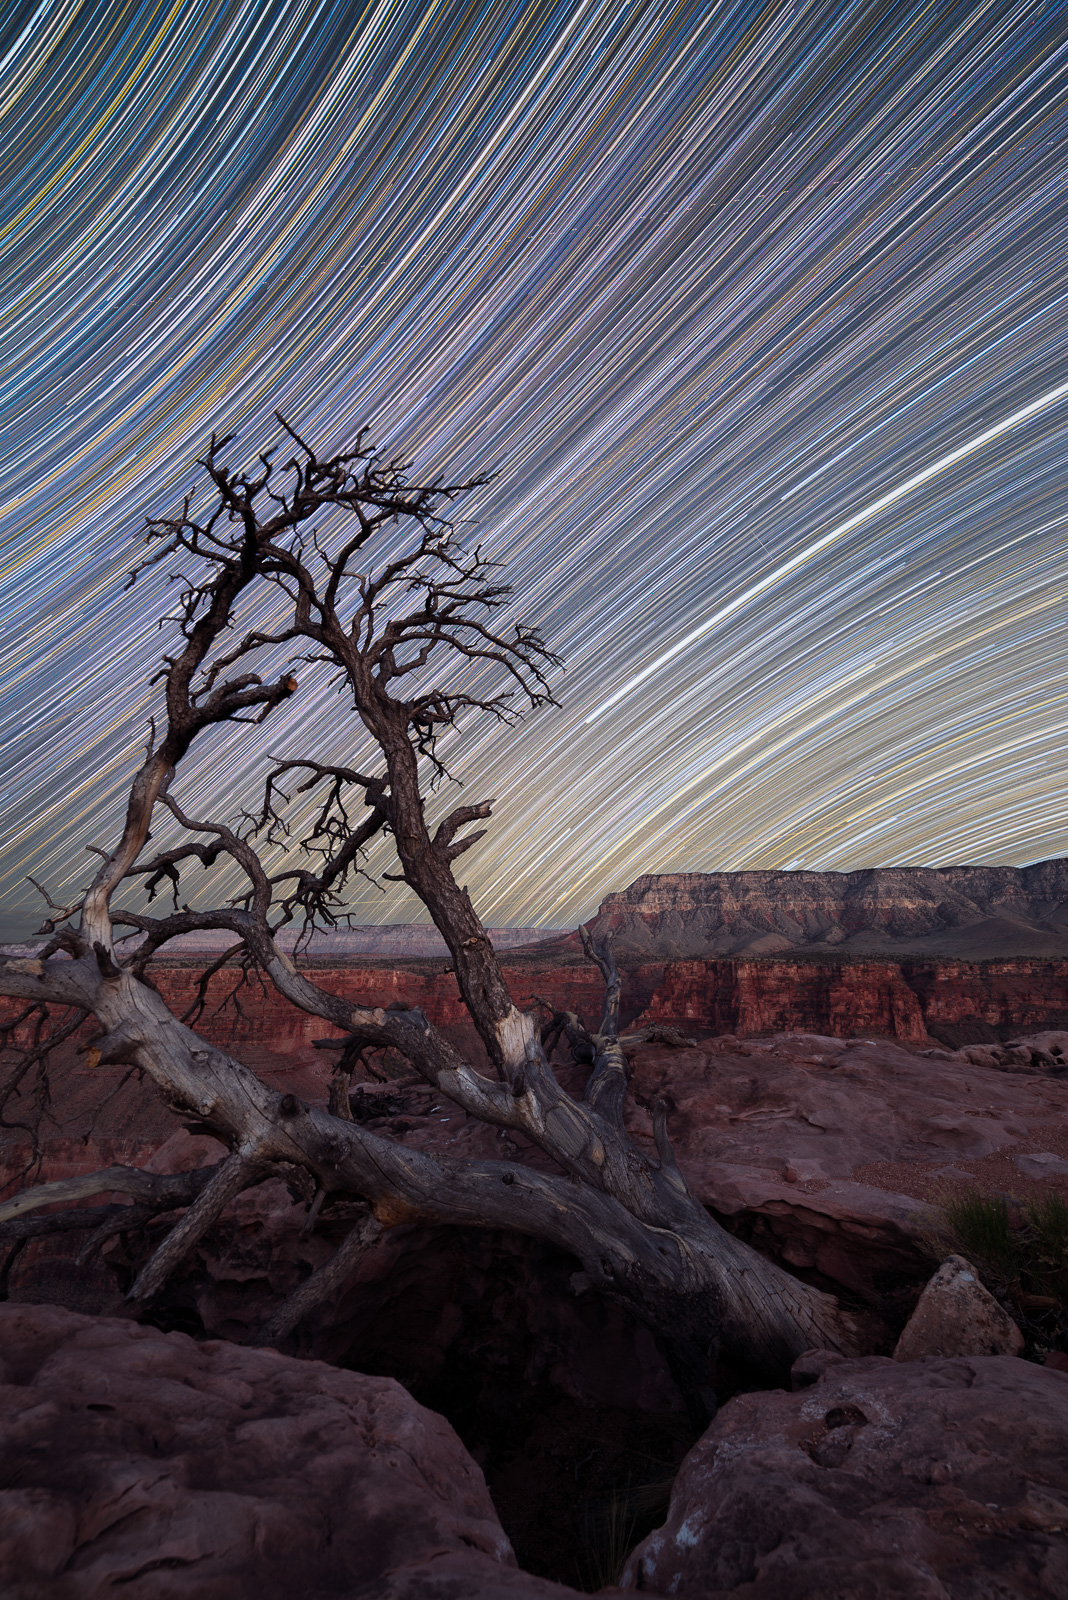 Tuweep Star Trails